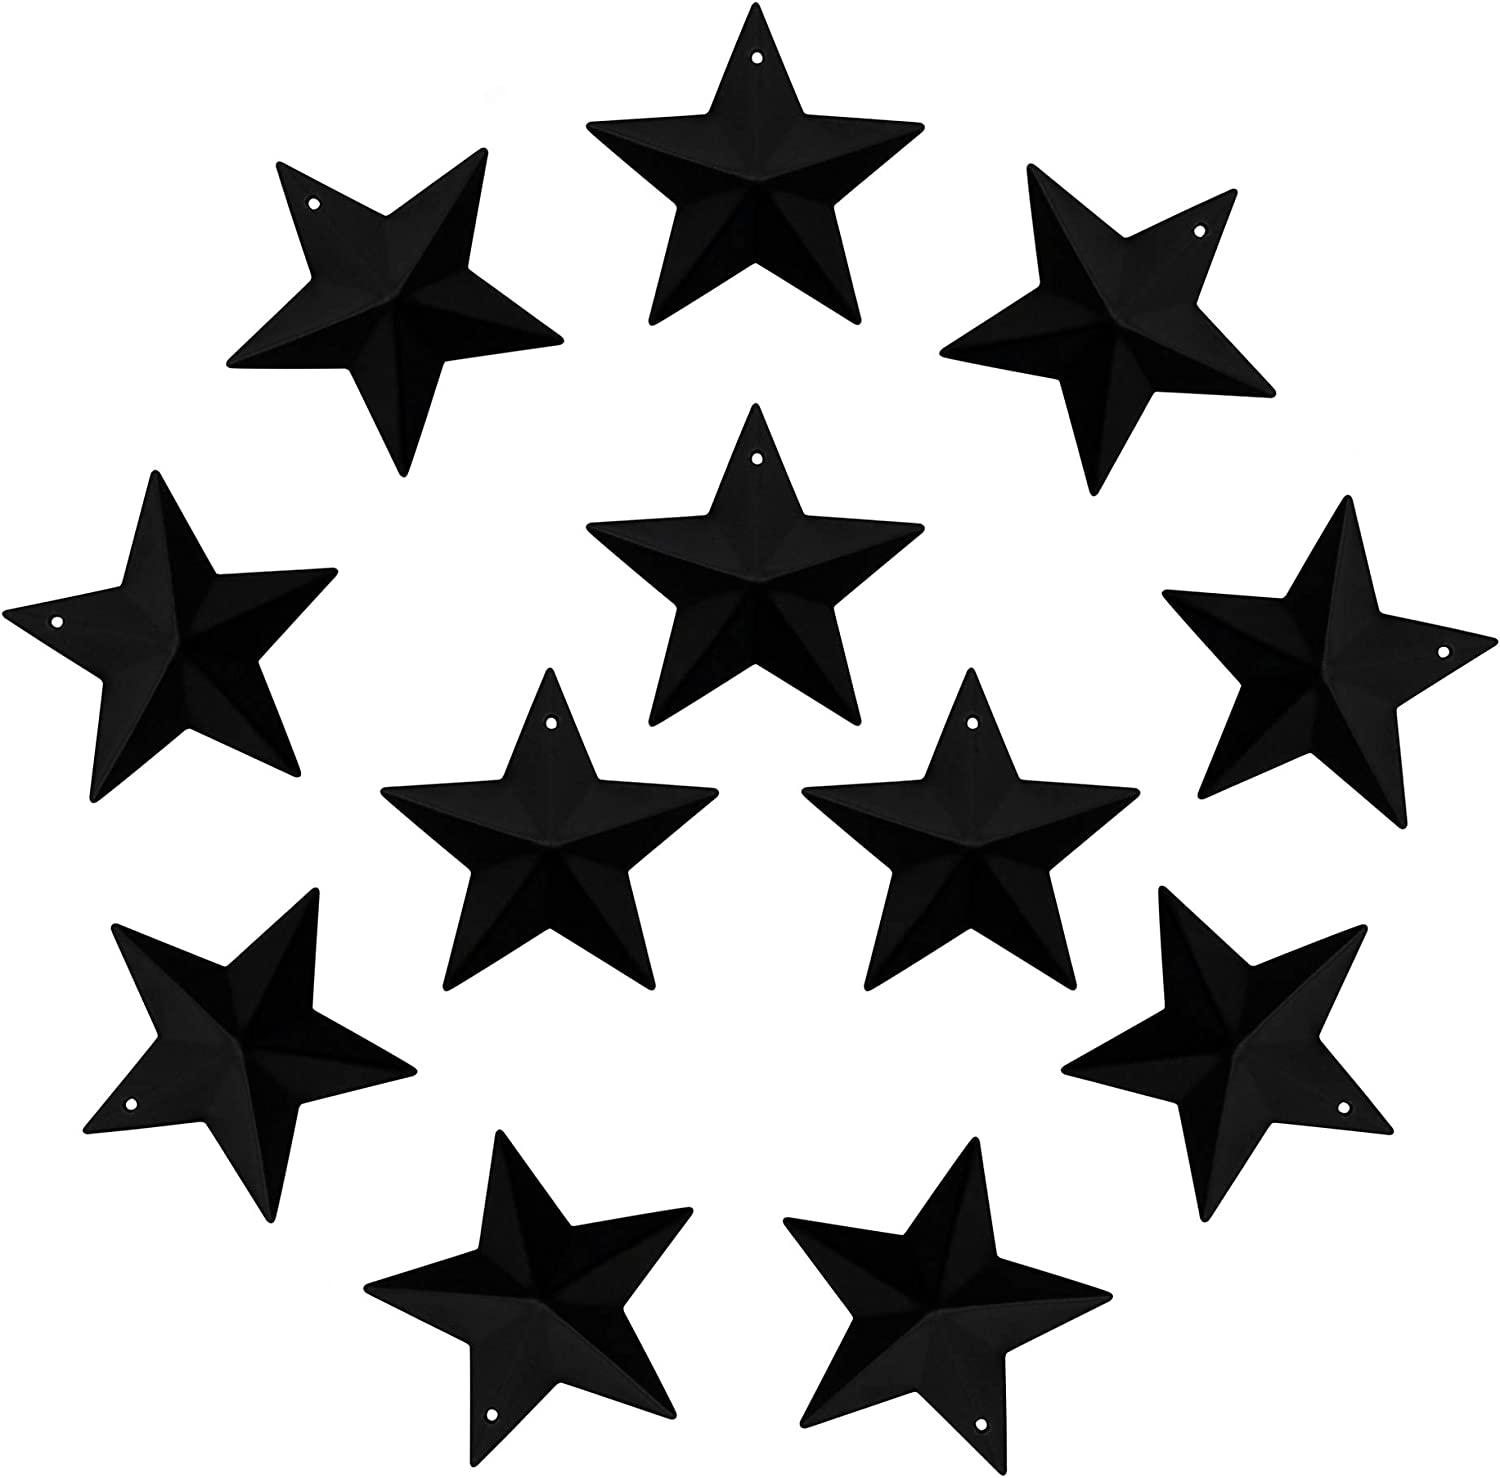 CVHOMEDECO. Country Rustic Primitive Vintage Gifts Black Small Metal Barn Star Wall/Door Decor, 2-1/4 Inch, Set of 12.